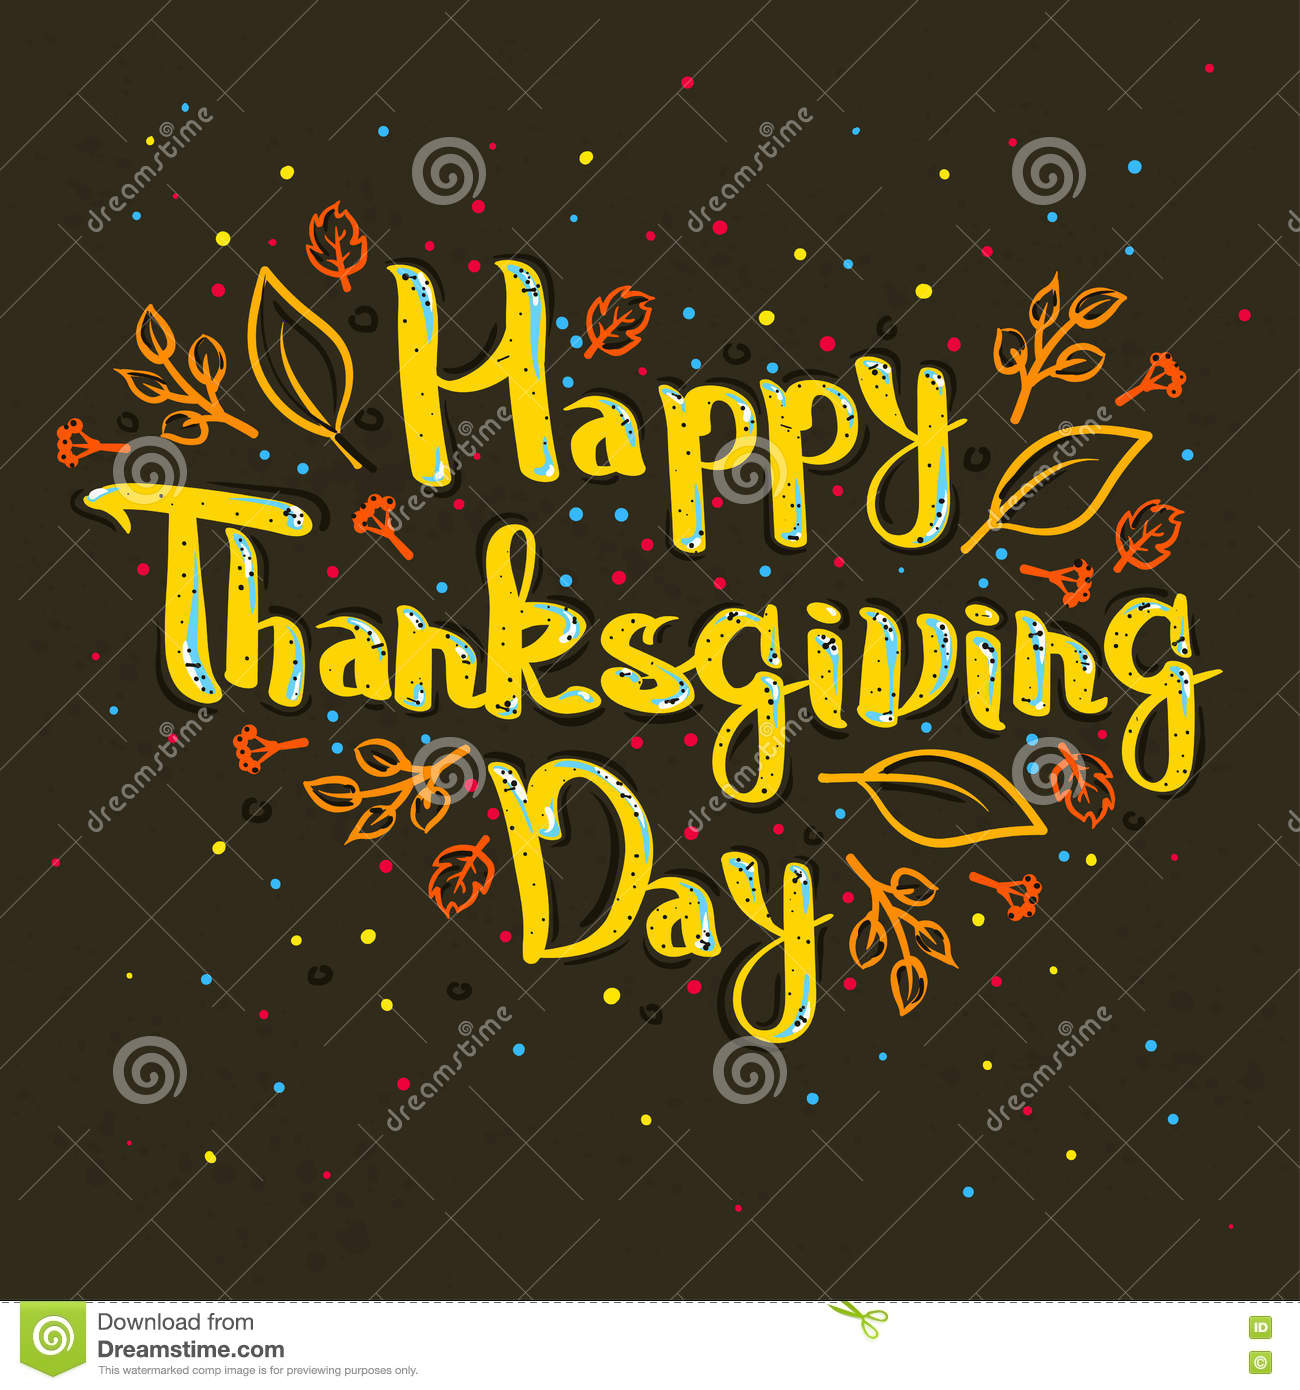 Lettering greeting cards with text happy thanksgiving day stock lettering greeting cards with text happy thanksgiving day m4hsunfo